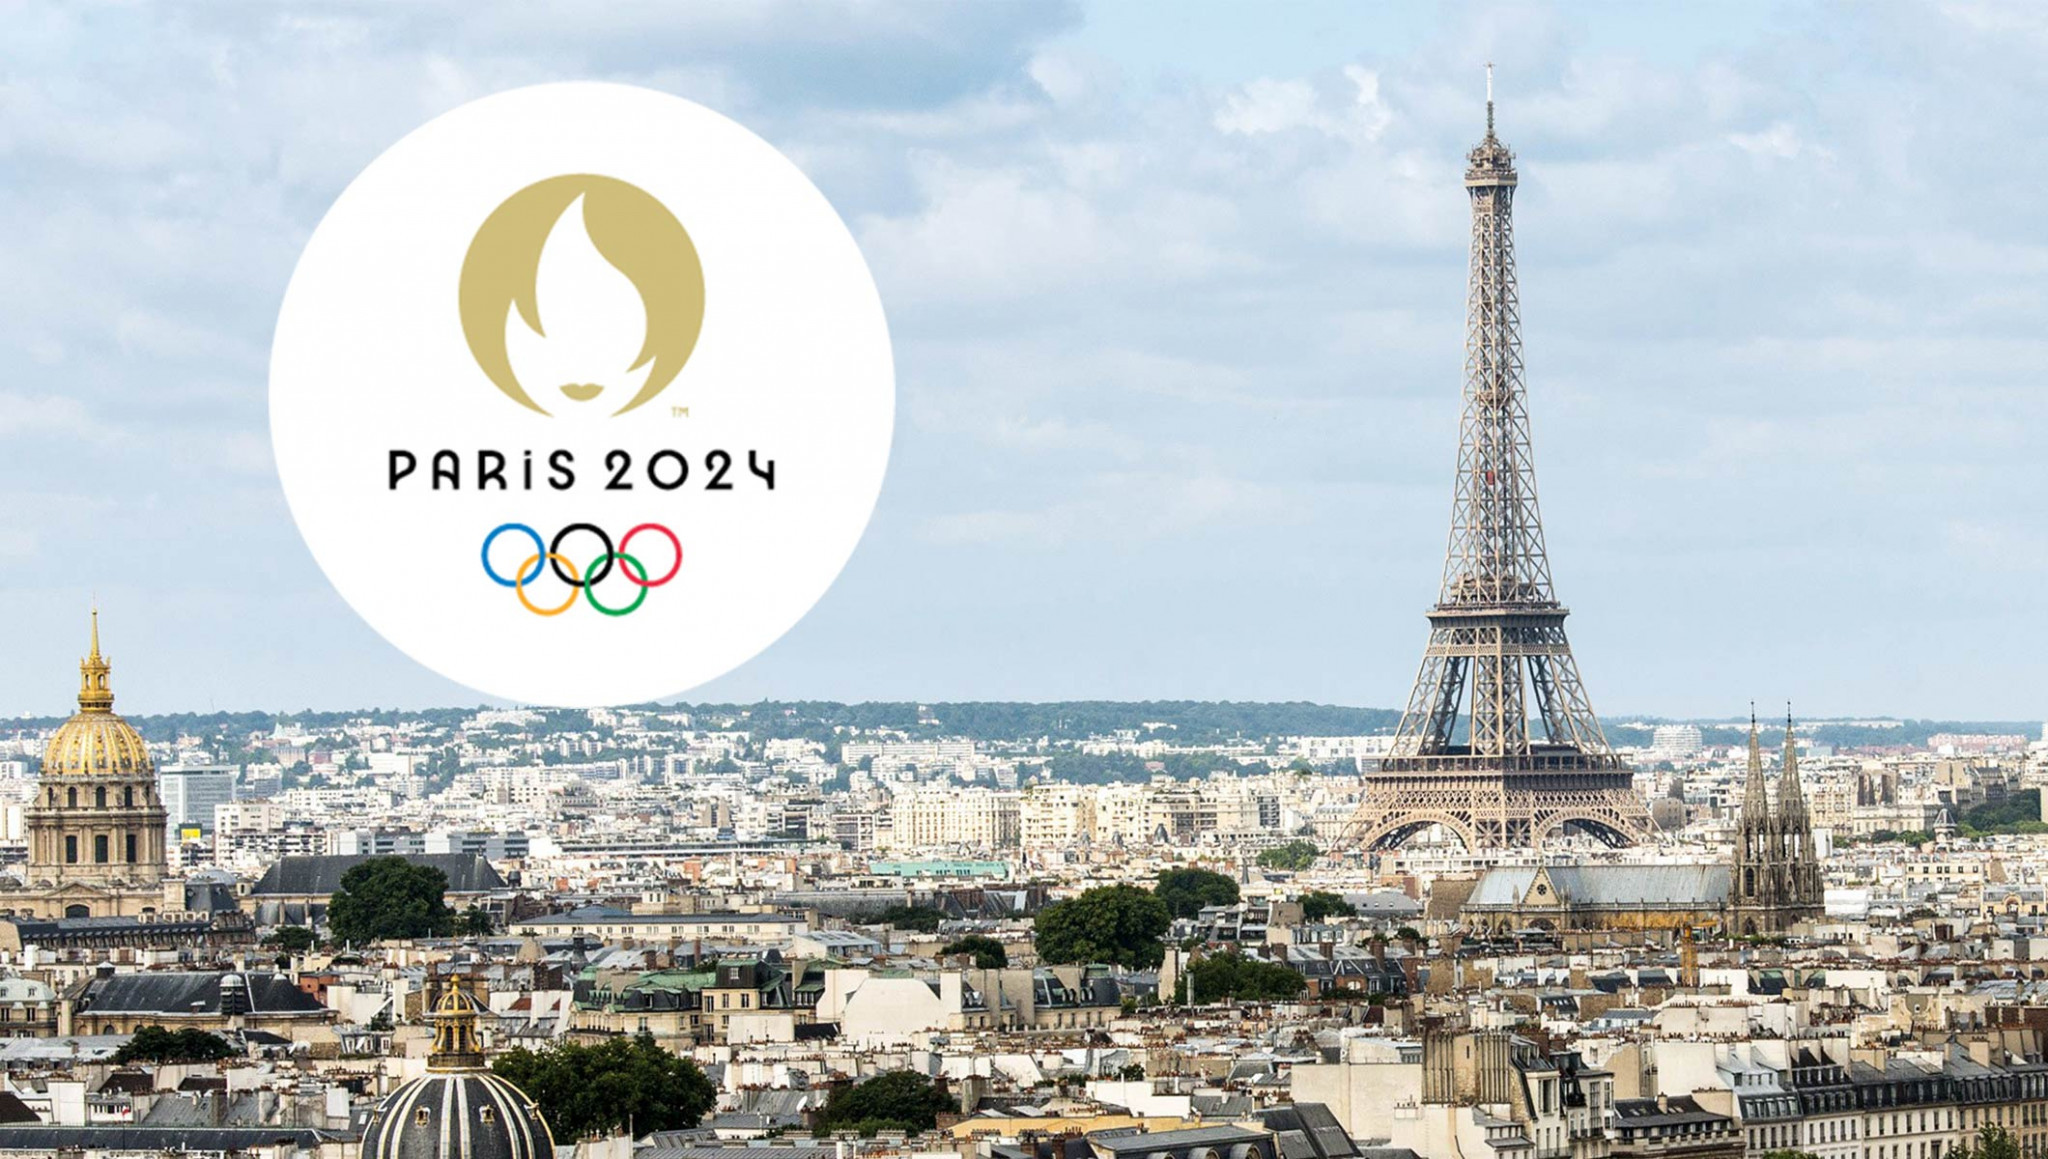 Paris 2024 organisers say the marketing, sports programme, organisational and communications areas of their plans are likely to be impacted by the postponement of Tokyo 2020 ©Getty Images